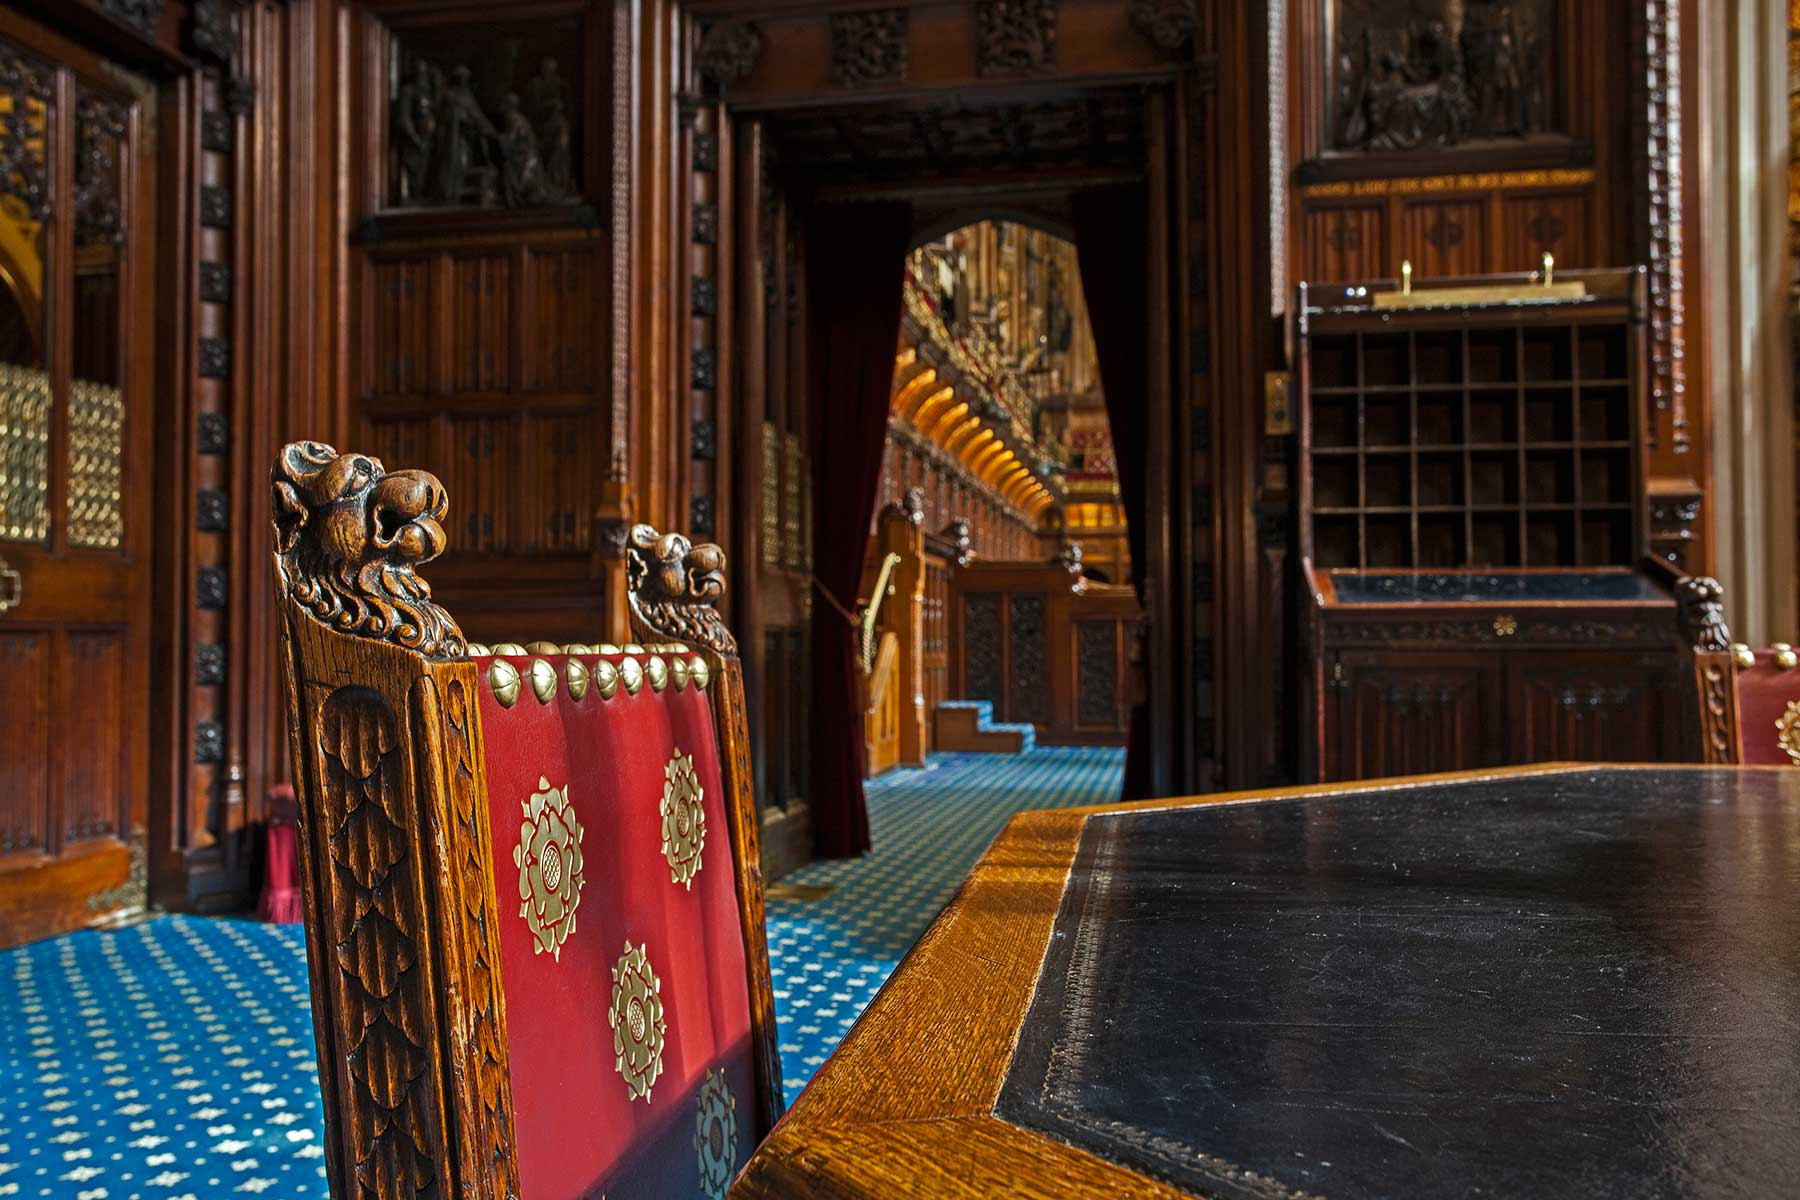 Historic furniture at the Palace of Westminster